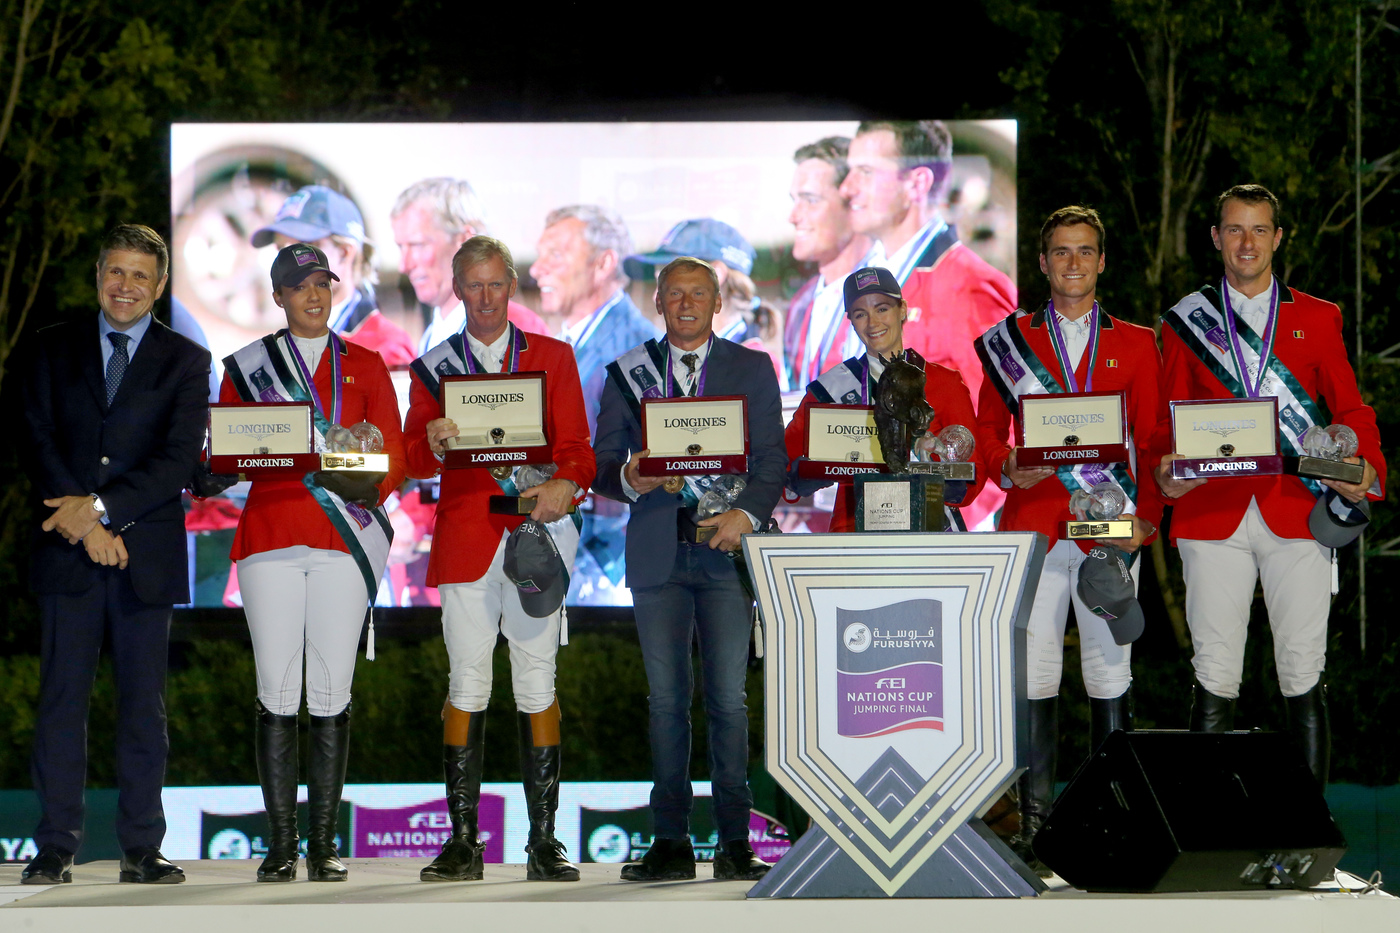 Longines Show Jumping Event: Longines timed the victory of Team Belgium at the Furusiyya FEI Nations CupTM Jumping final  3